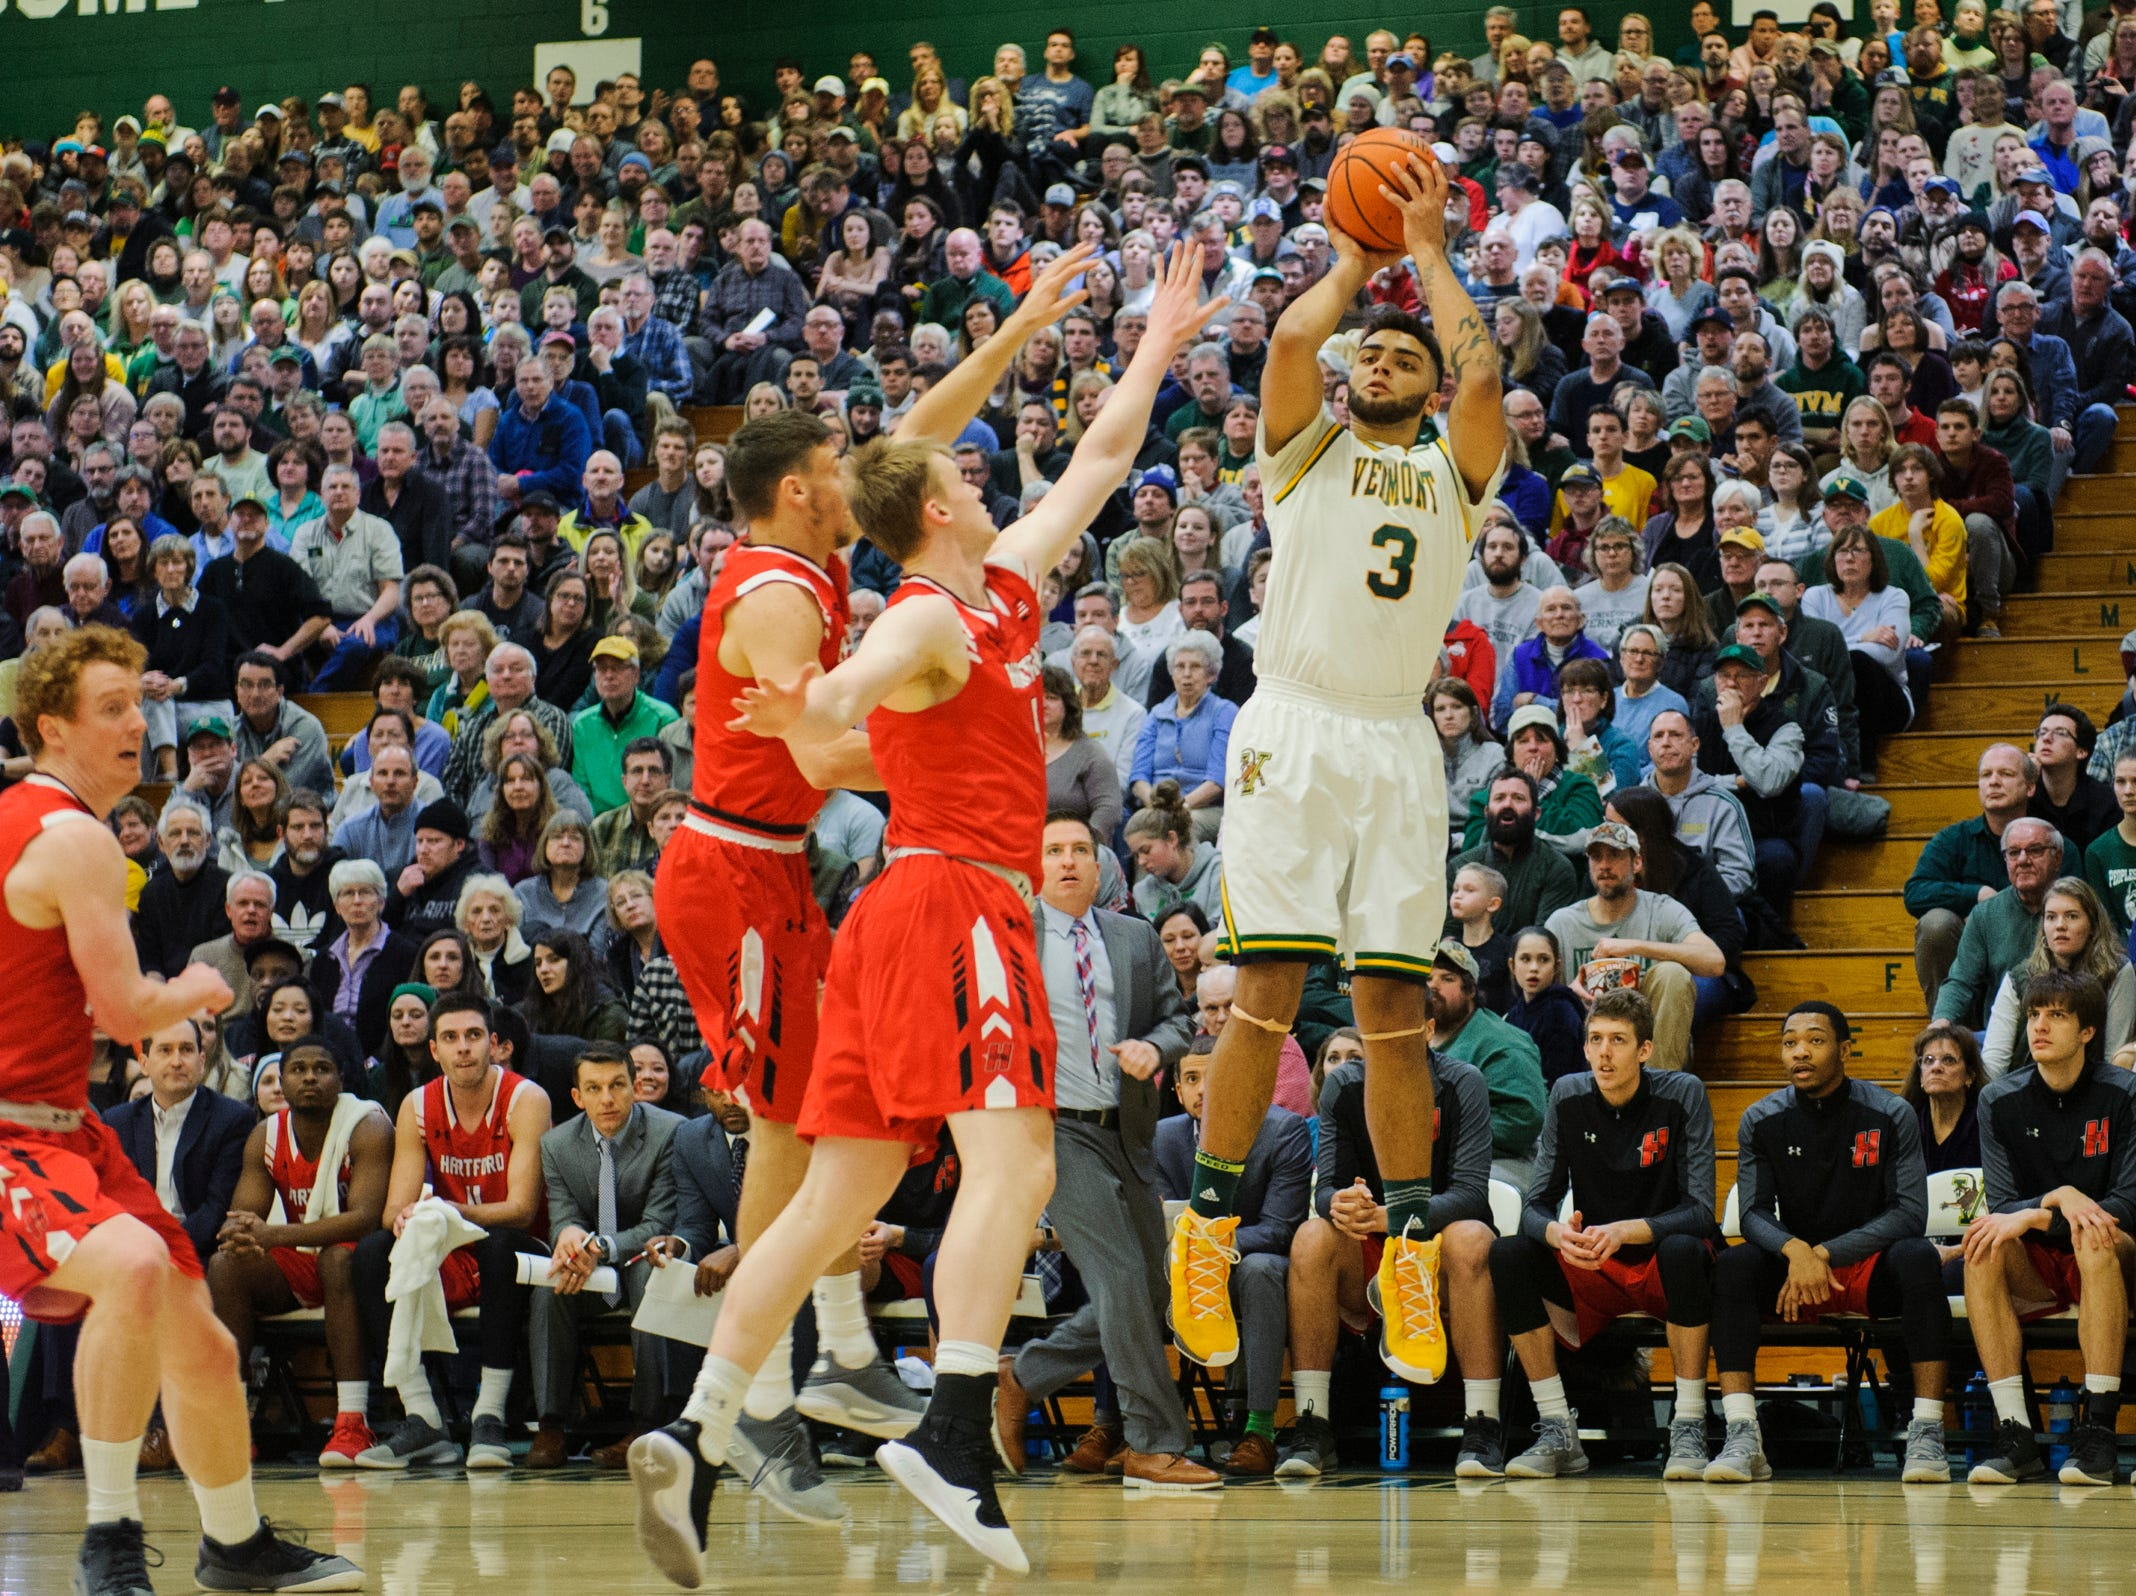 Vermont forward Anthony Lamb (3) takes a shot during the men's basketball game between the Hartford Hawks and the Vermont Catamounts at Patrick Gym on Saturday night January 12, 2019 in Burlington.